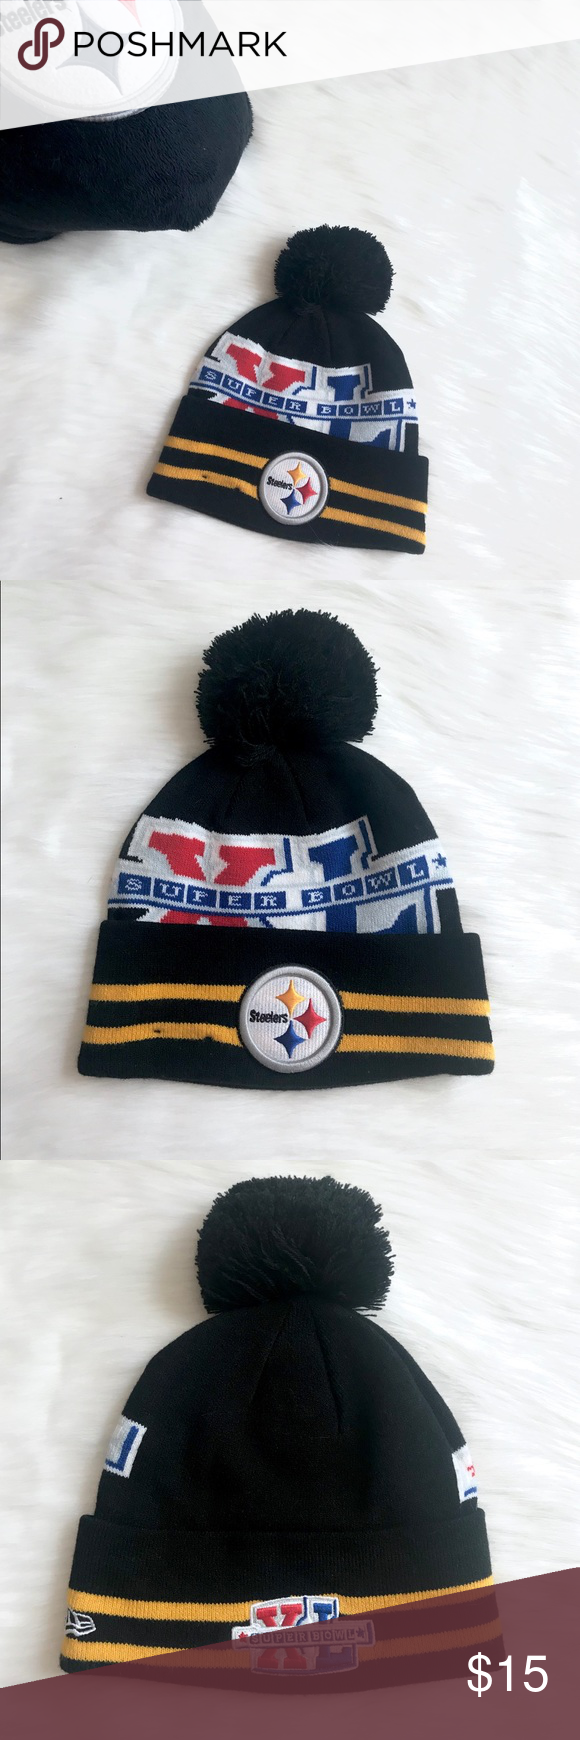 7dbe446be Pittsburgh Steelers New Era Black NFL Knit Hat Material: 90% Acrylic ...